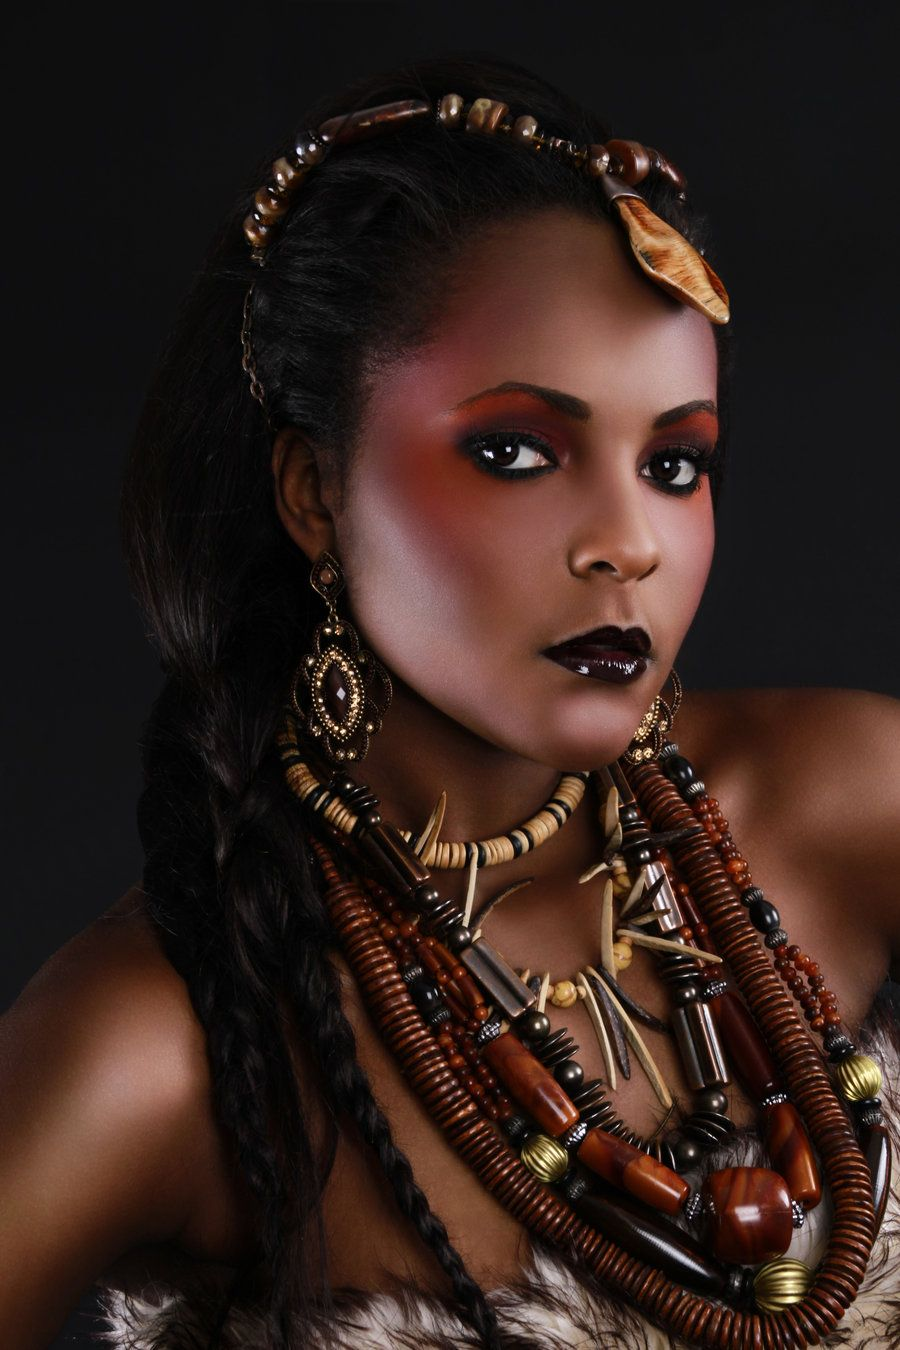 african tribal fashion - Google Search | African Fashion ...